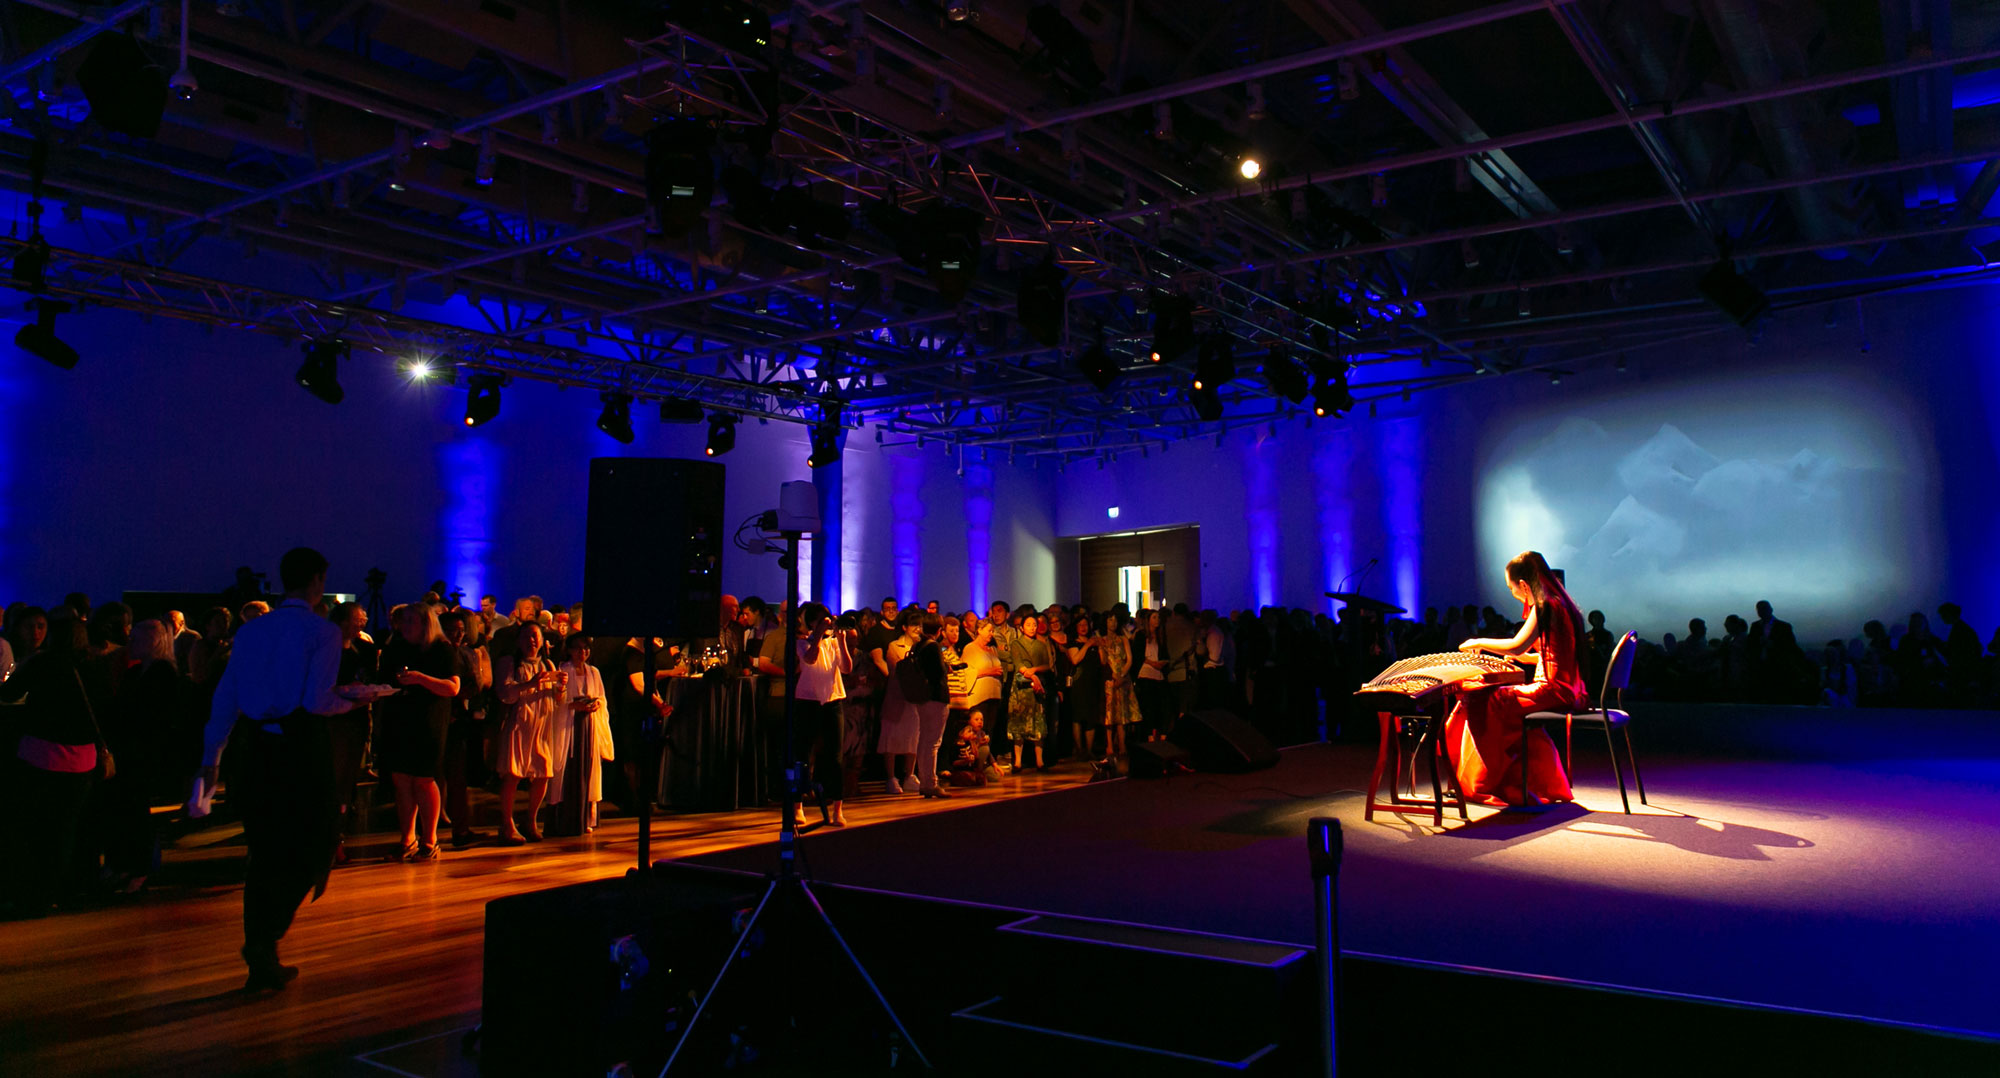 A crowd in a big function space watching a performance